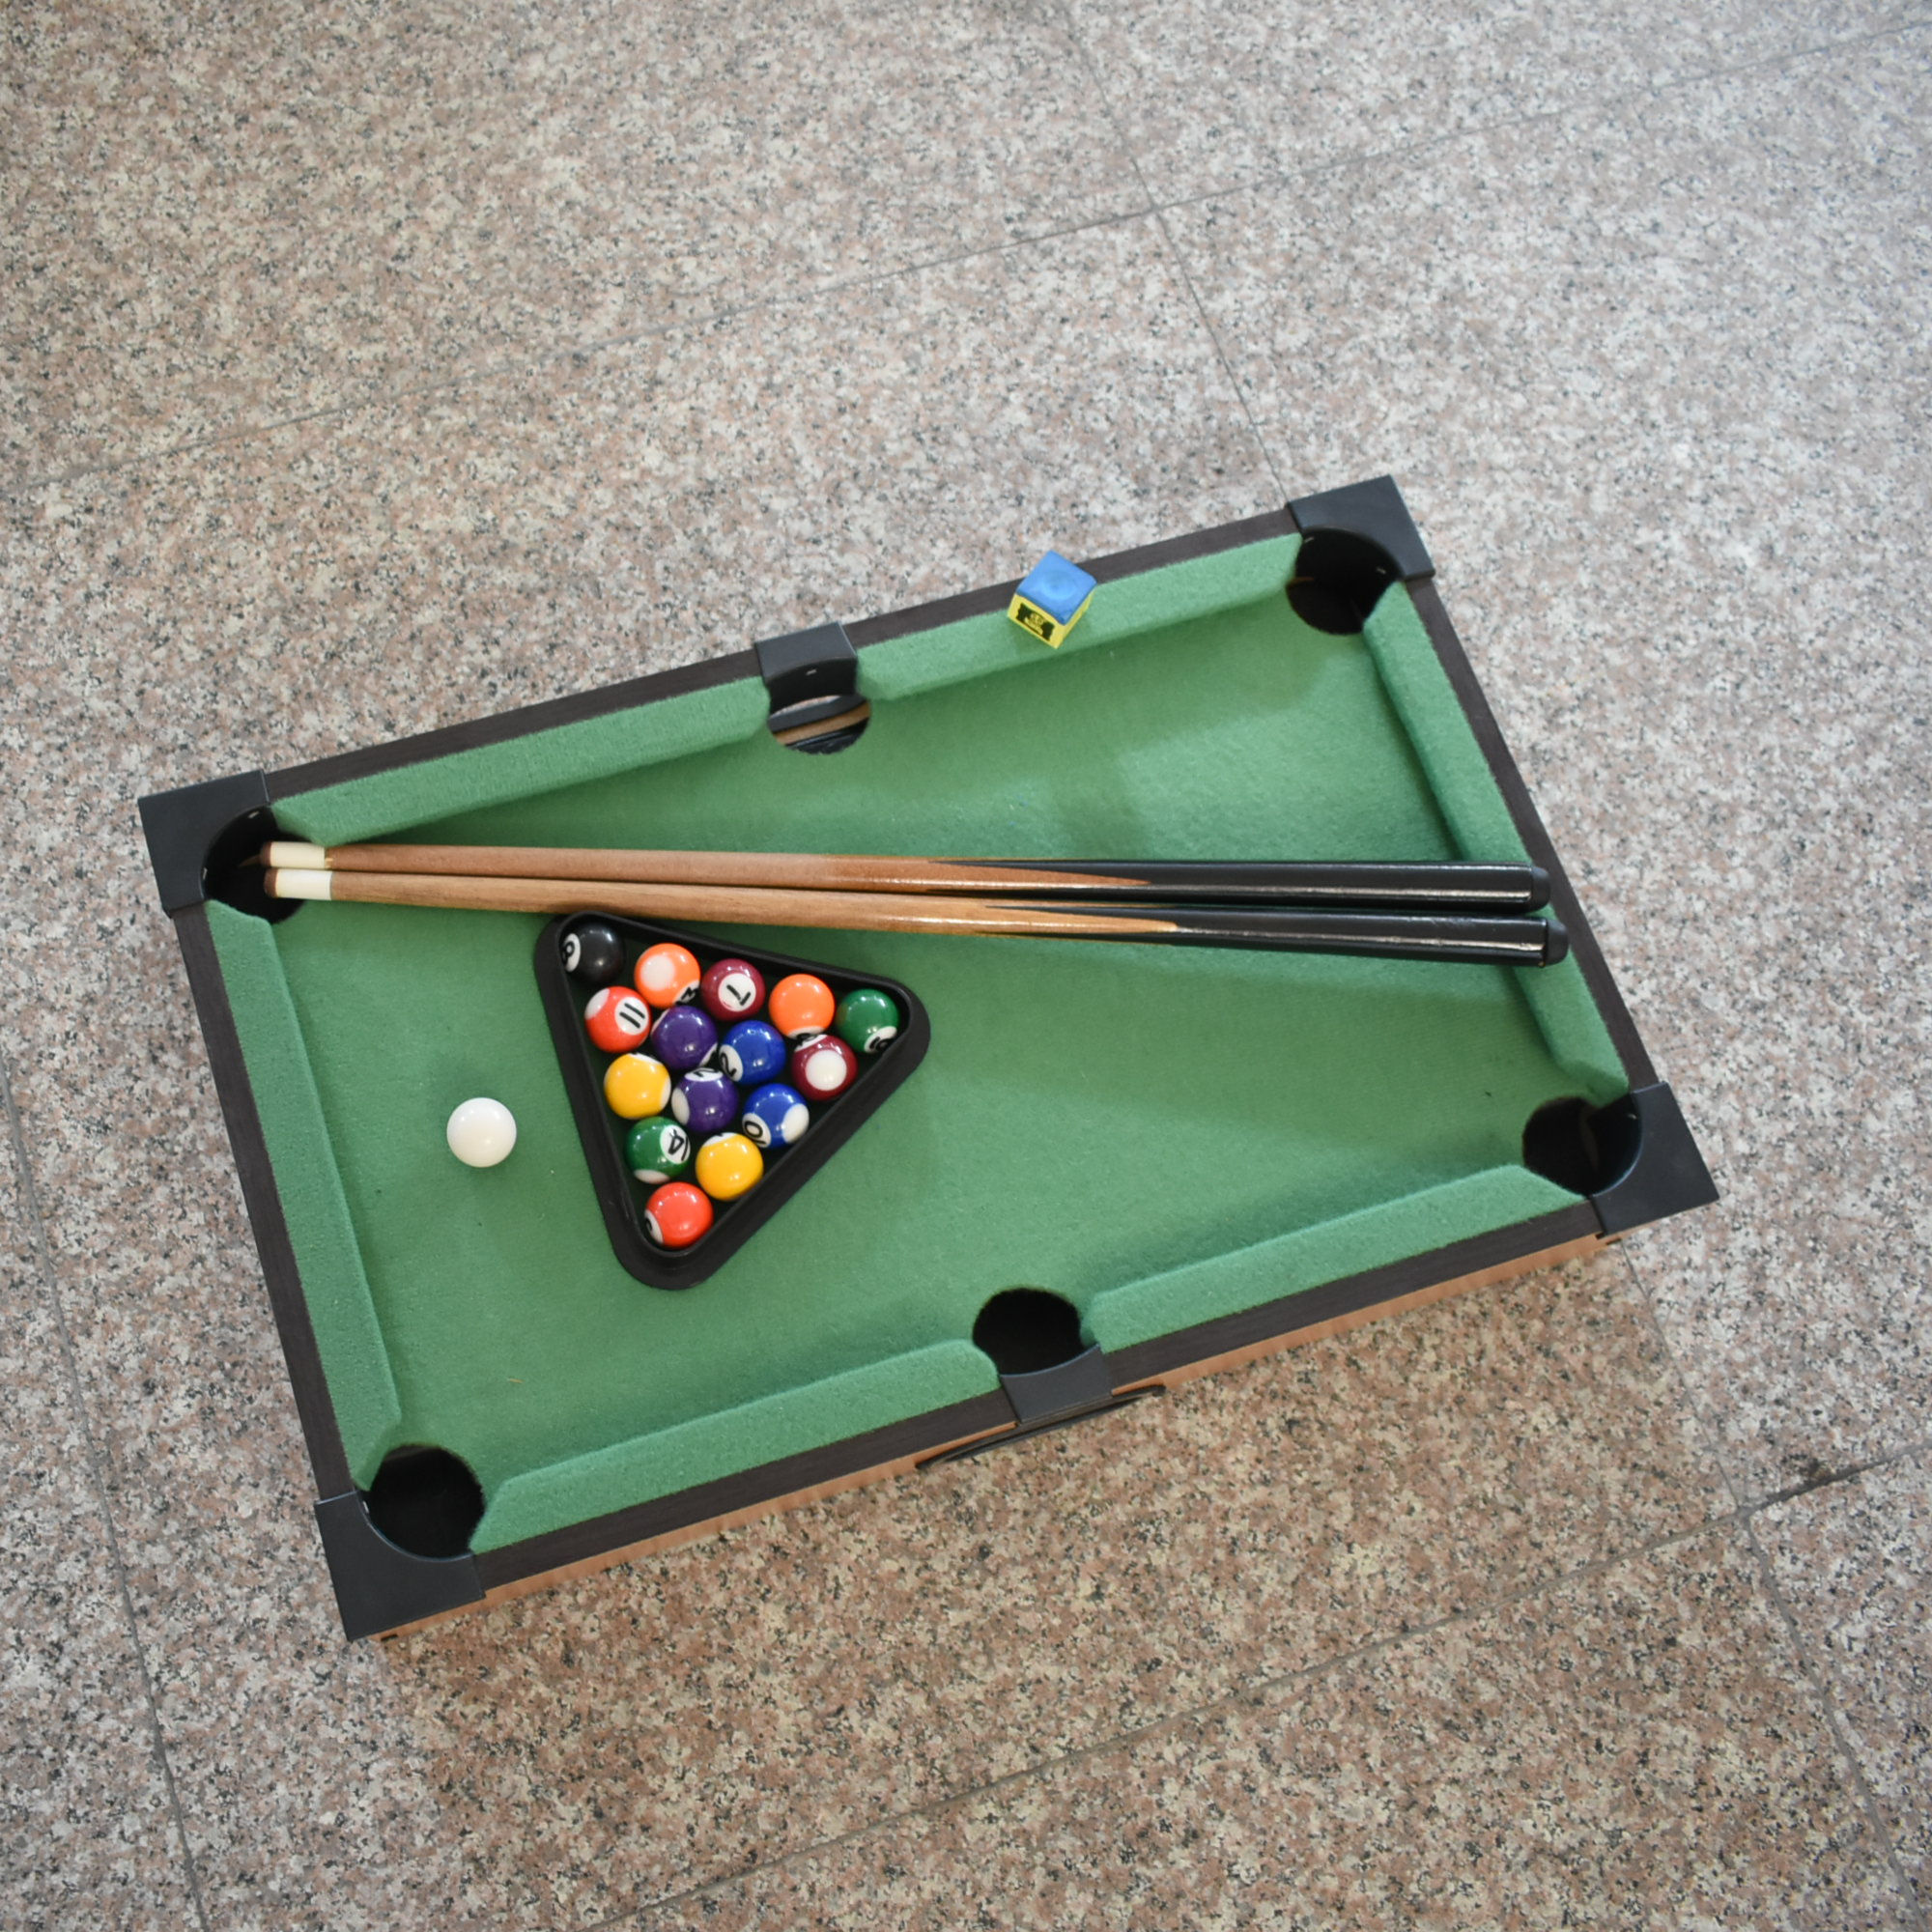 Mini Tafelblad Ball Biljart Home Biljart Game Sets Snooker <span class=keywords><strong>Pooltafel</strong></span> Voor Kind Goedkope Pool Tafels Mini Biljart Tafel